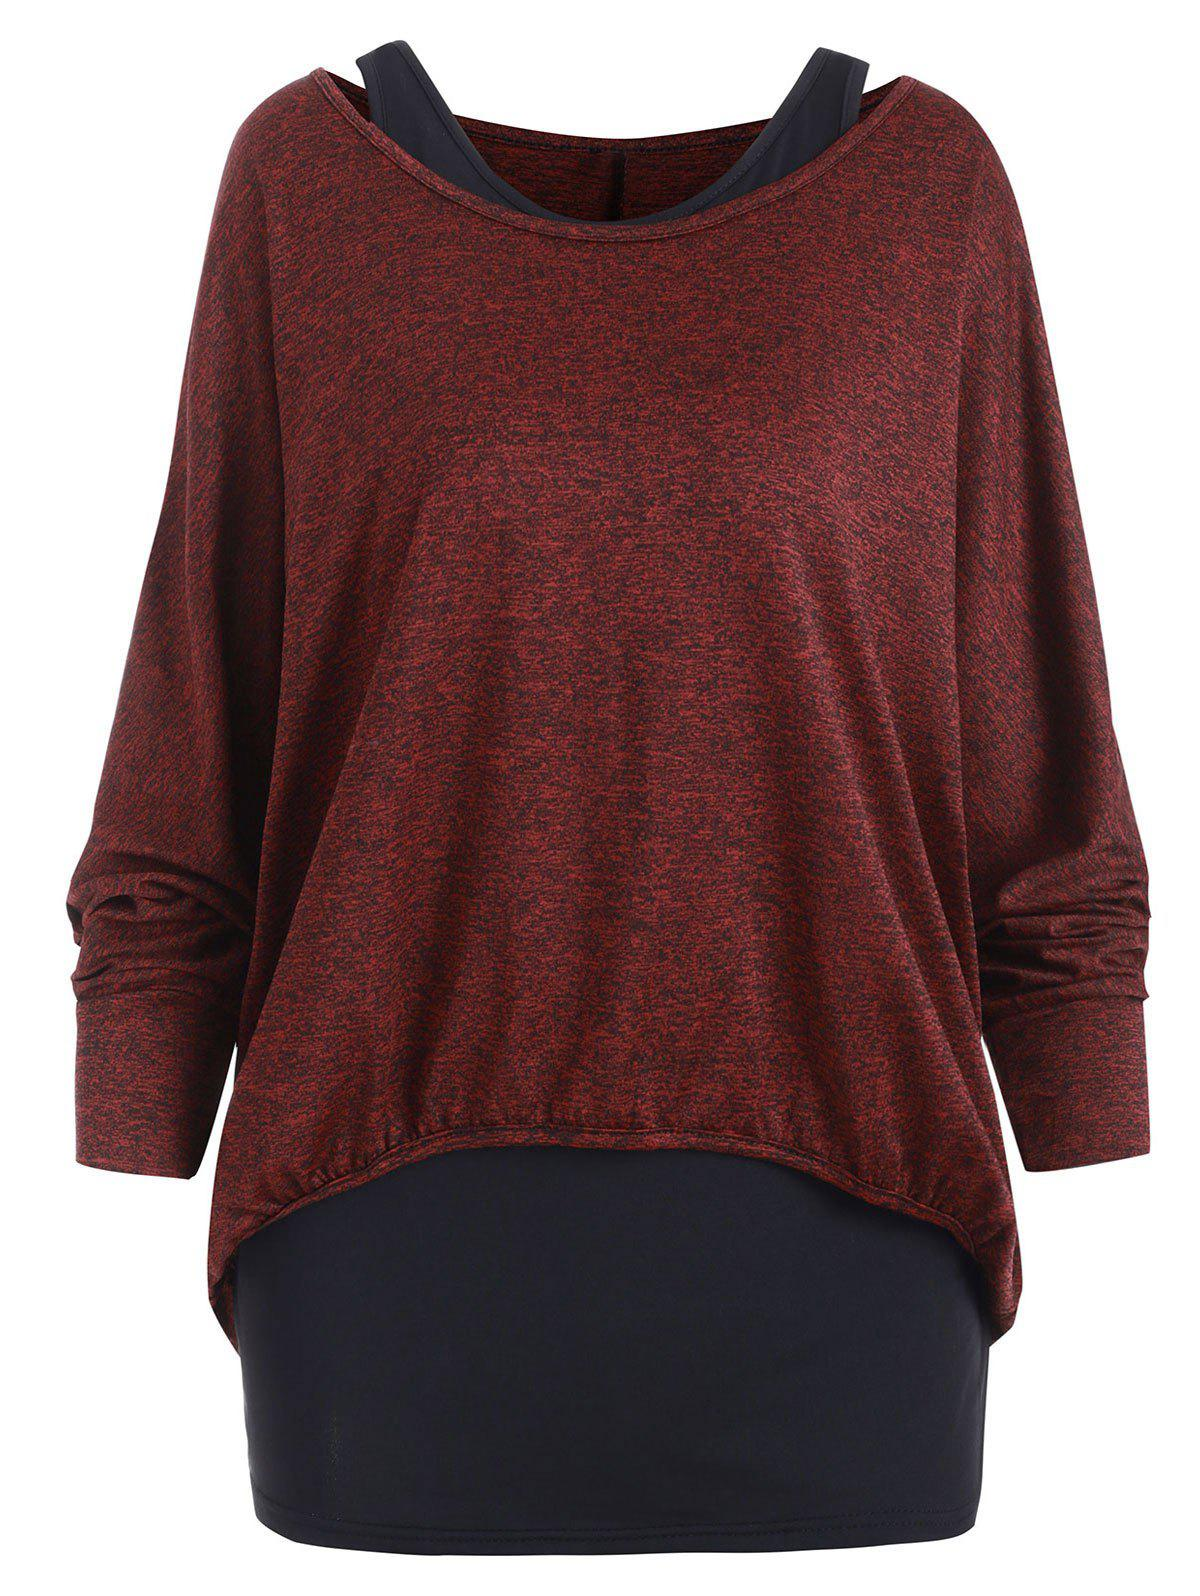 Affordable Dolman Sleeves Space Dye Tee with Tank Top